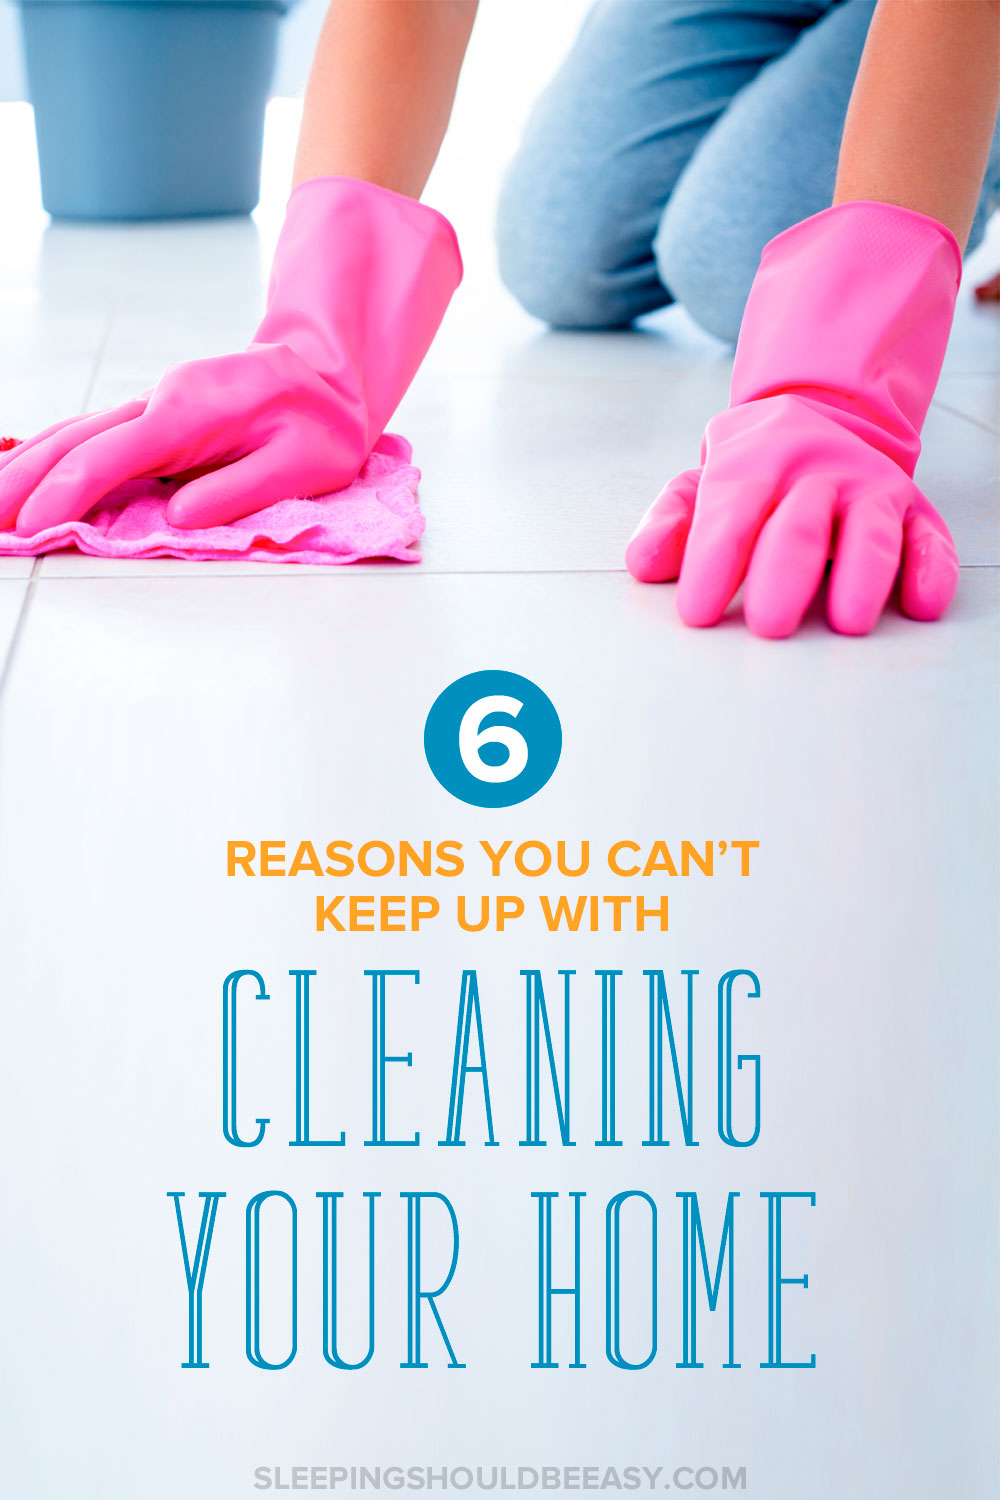 6 Little-Known Reasons You Can't Keep Up with Cleaning Your Home